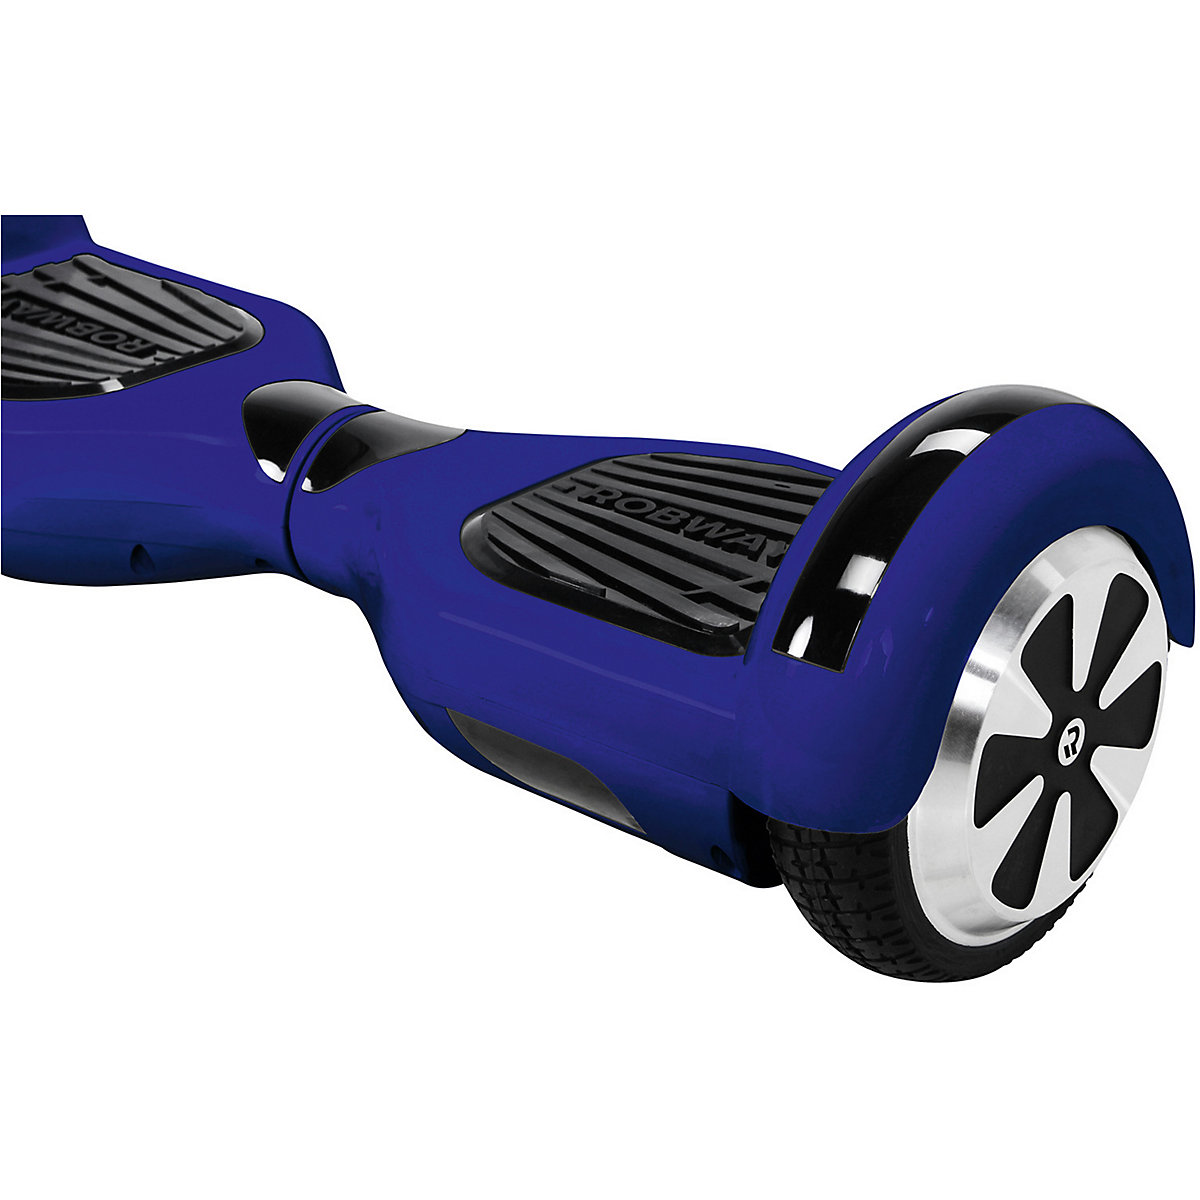 e balance hoverboard robway w1 6 5 zoll mit app funktion blau robway mytoys. Black Bedroom Furniture Sets. Home Design Ideas